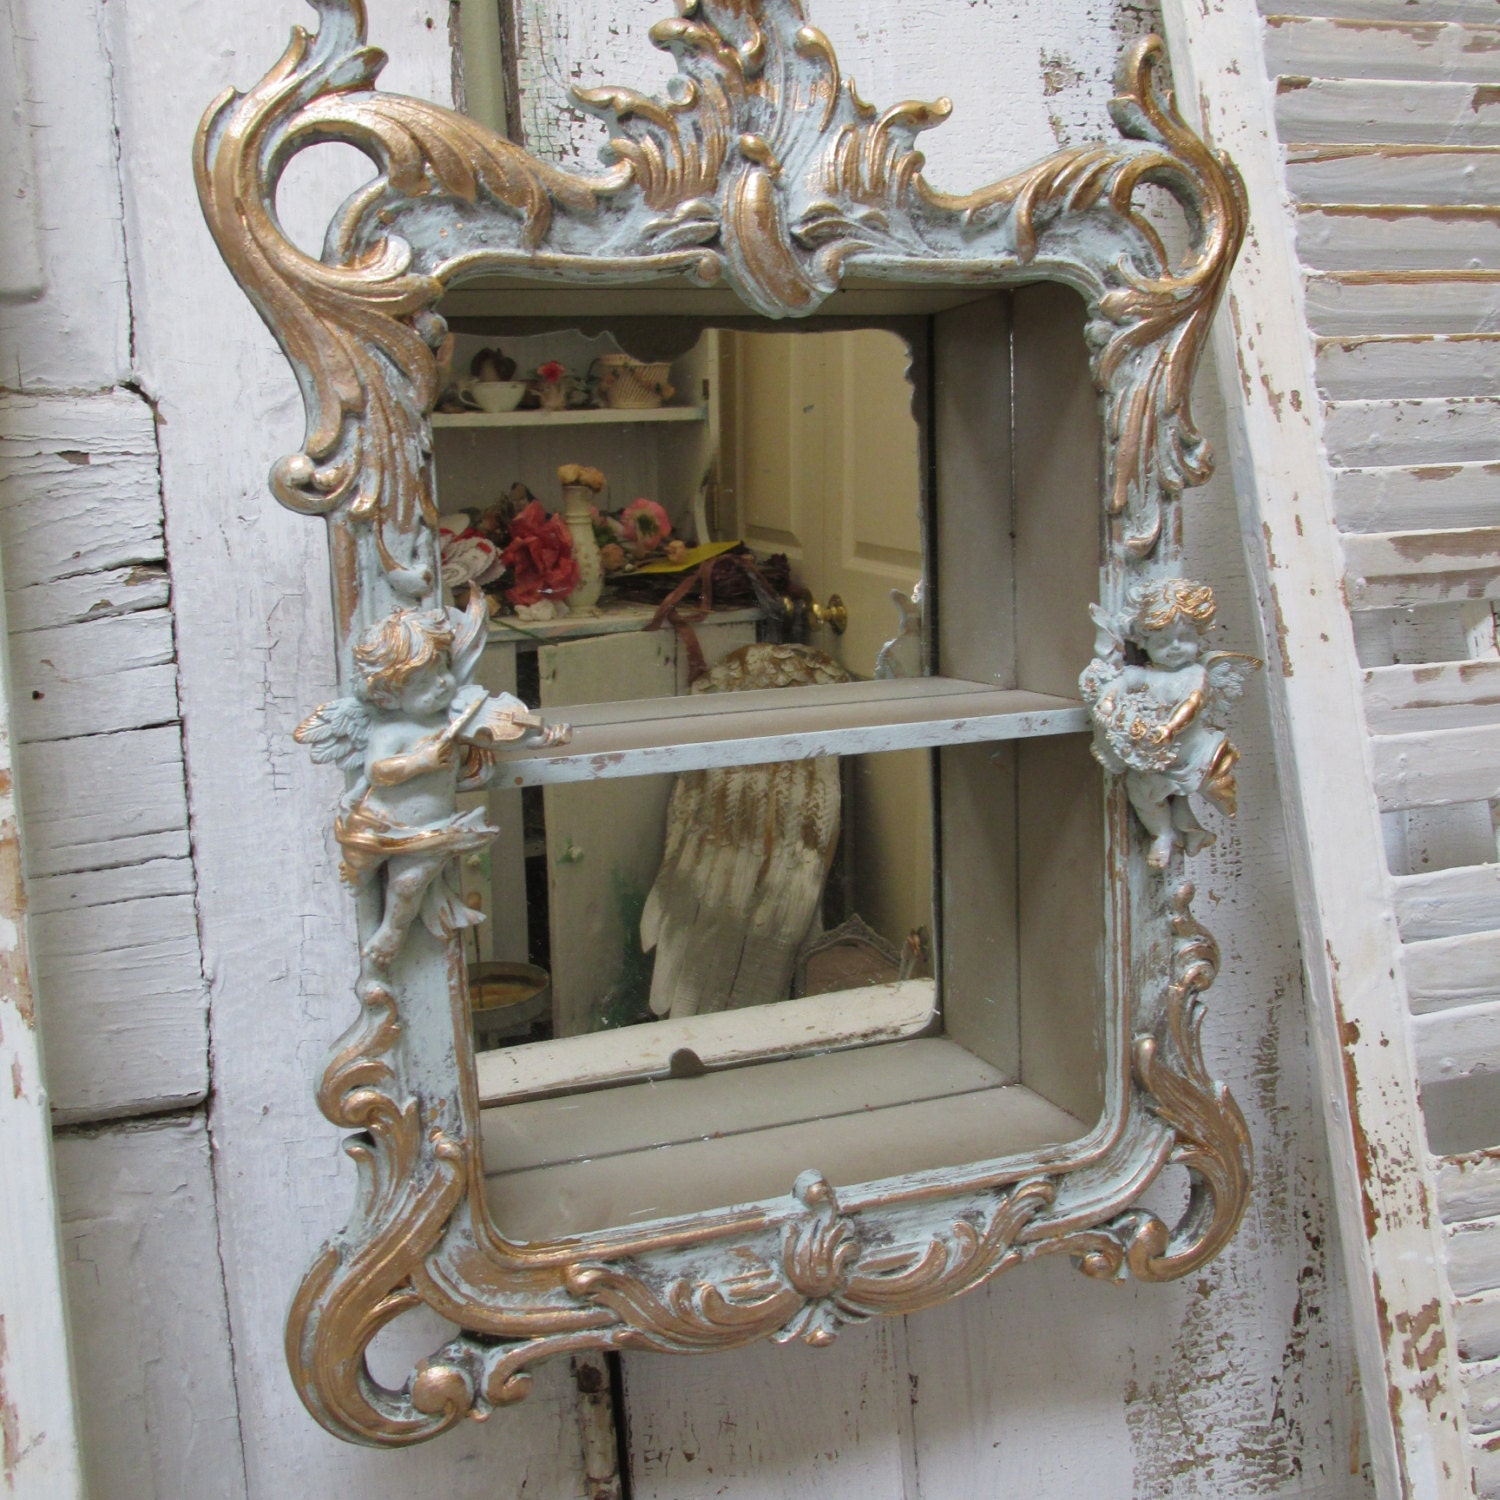 Ornate Wall Shelf Mirror With Cherubs French Blue Distressed